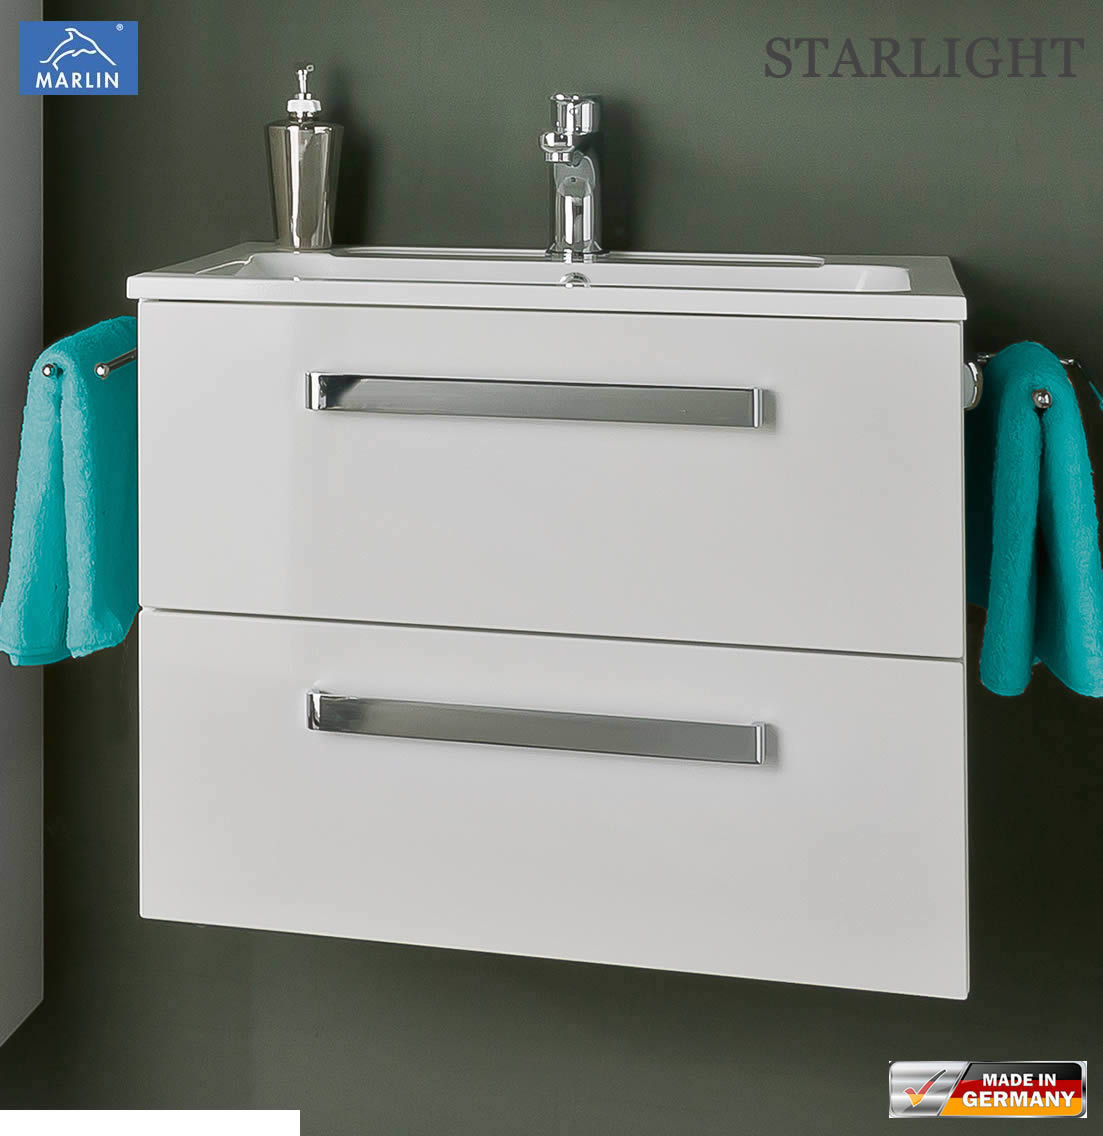 marlin starlight waschtischunterschrank set 60 cm impuls home. Black Bedroom Furniture Sets. Home Design Ideas